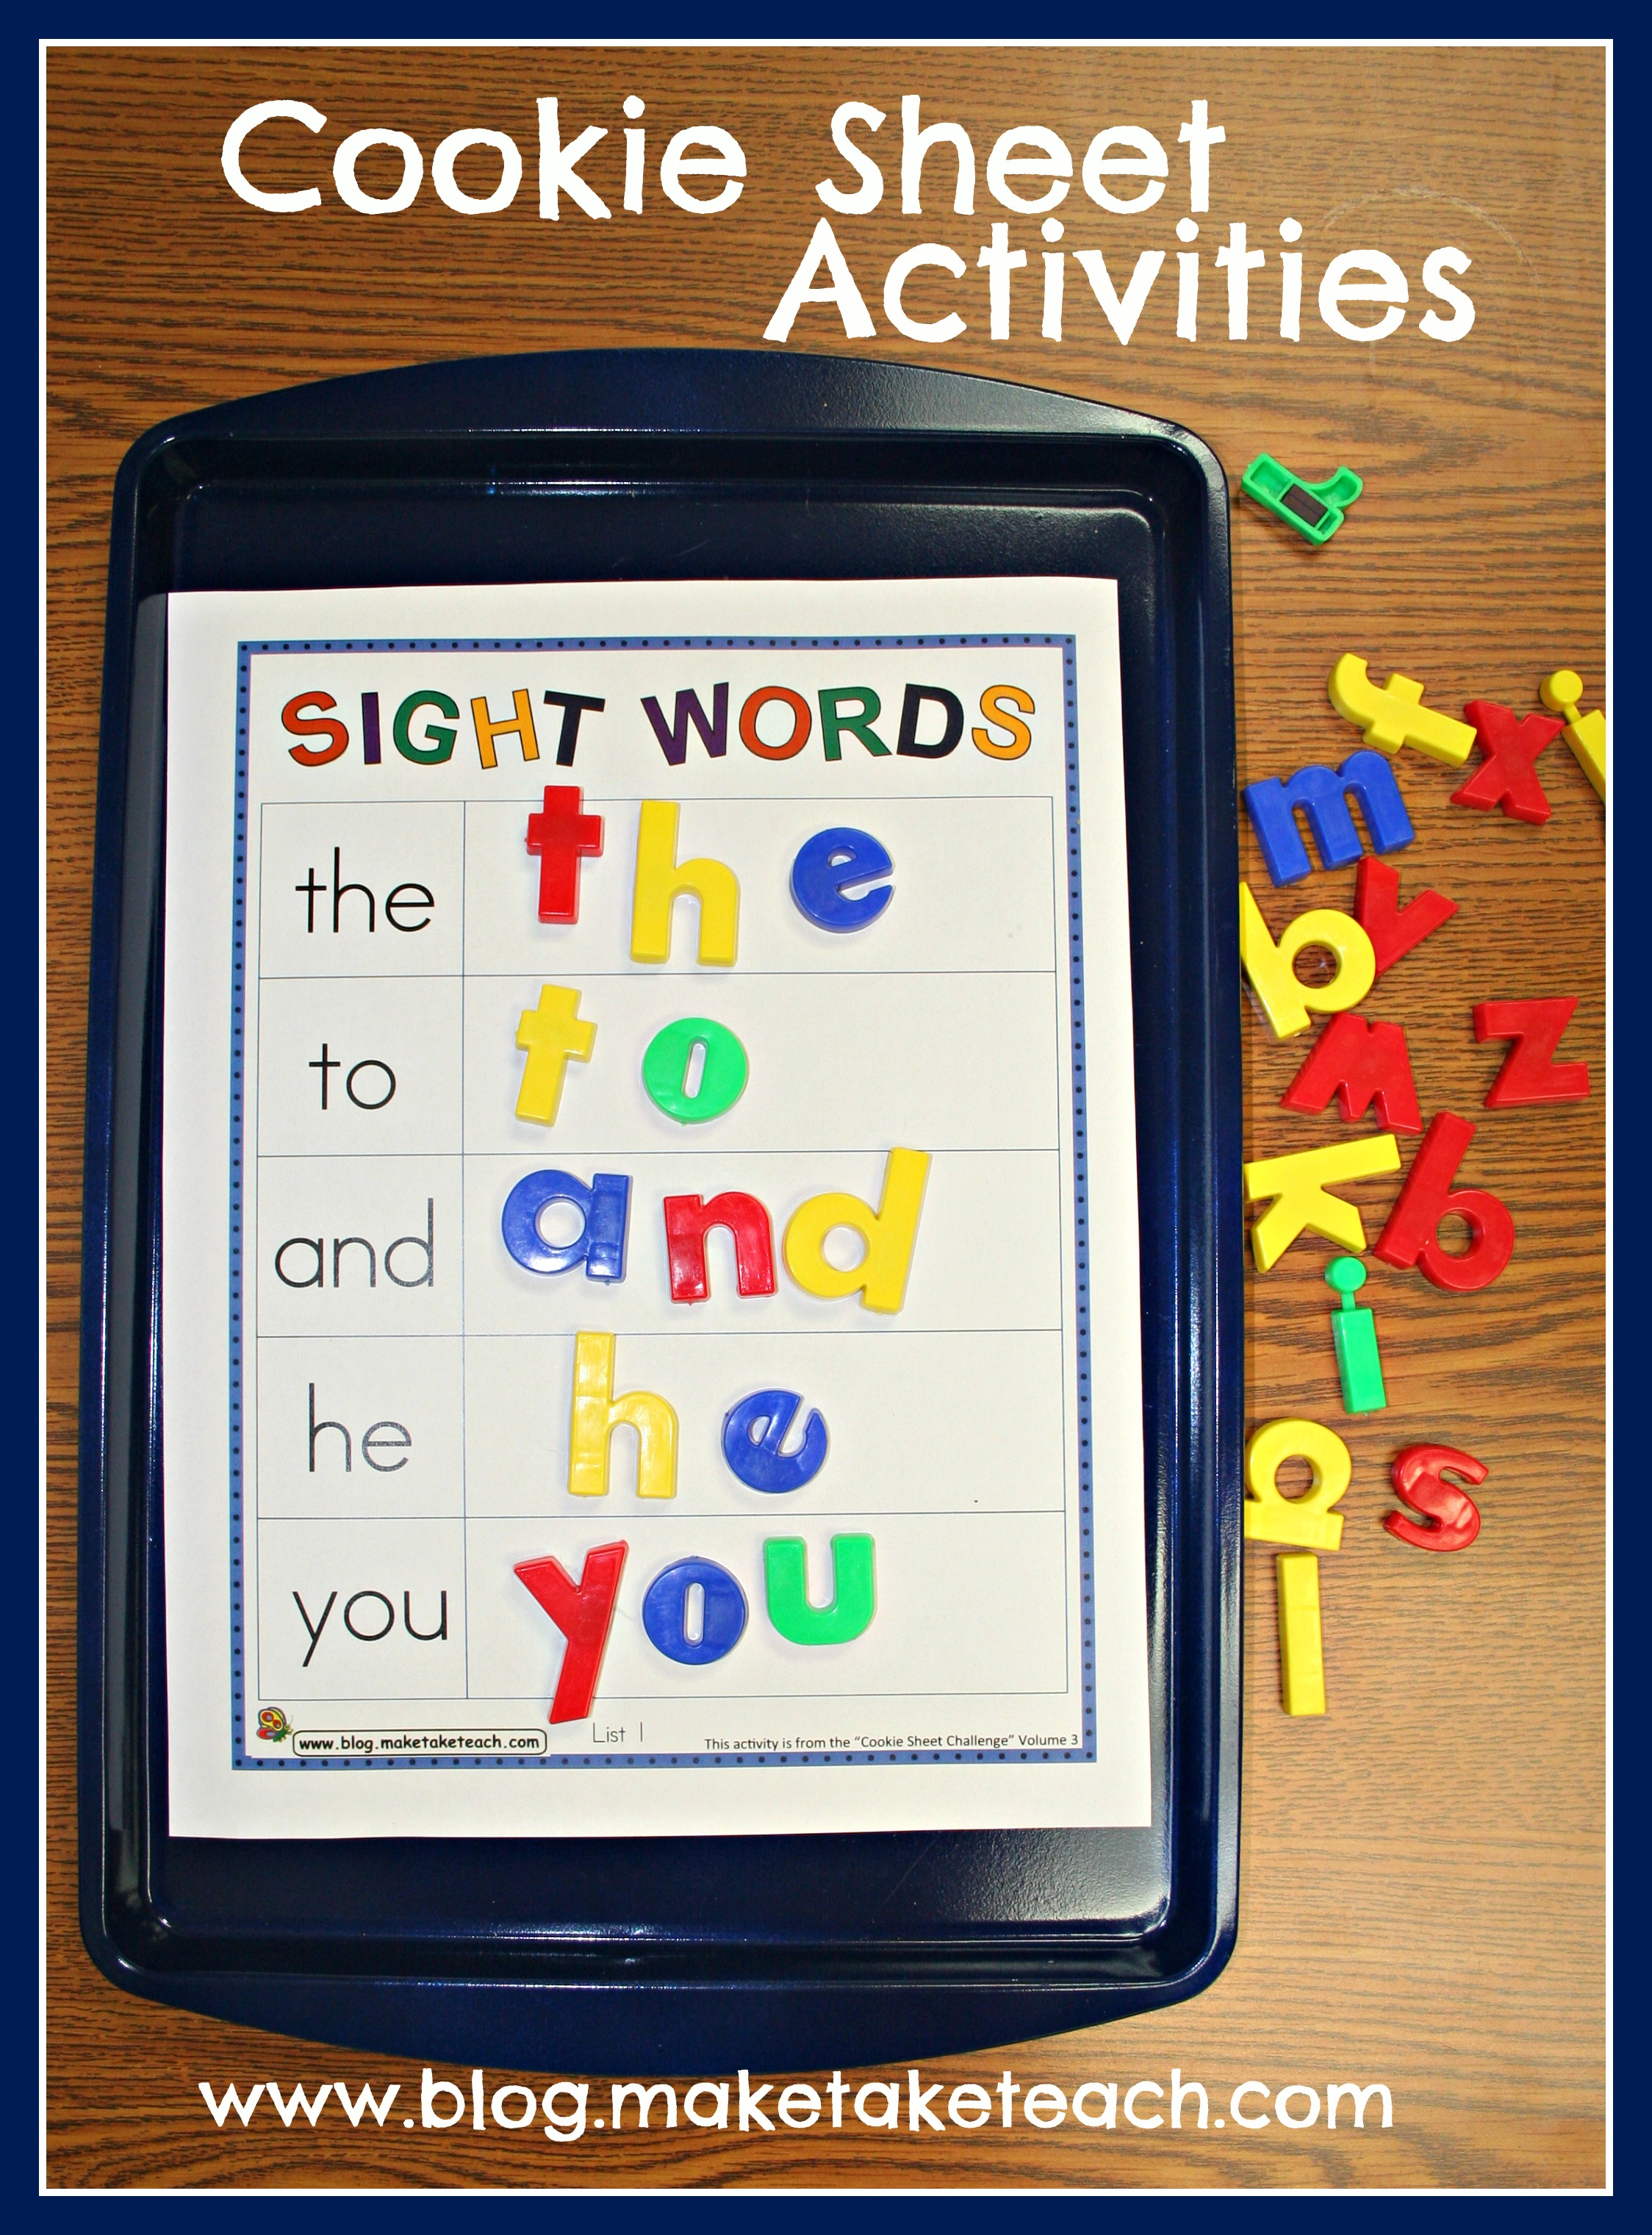 Words Sight Sight sight templates. 5 Templates Building words activities  sample Words sheet